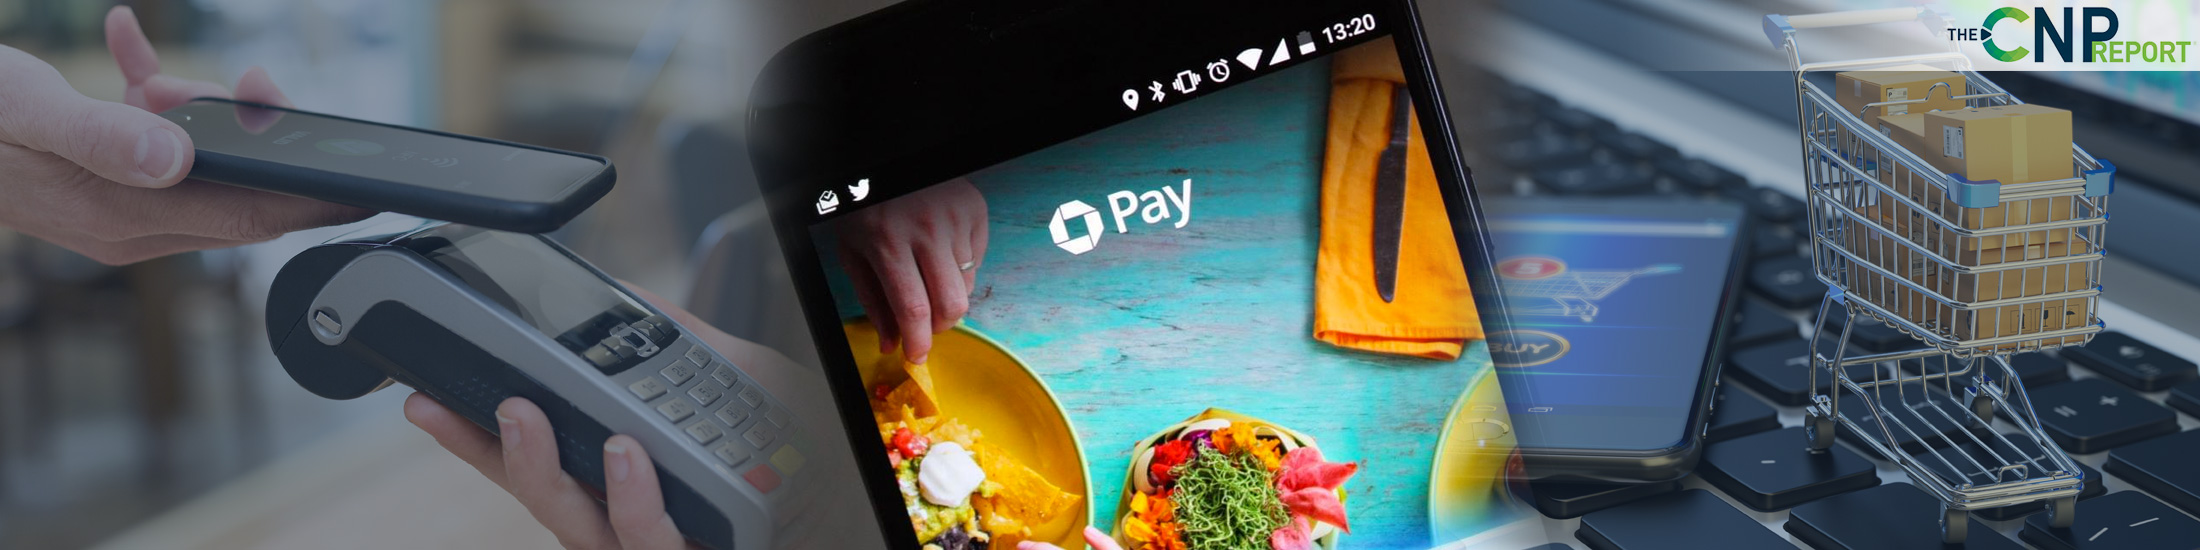 Chase to Shutter In-Store Mobile Pay App, Retain Online Payment